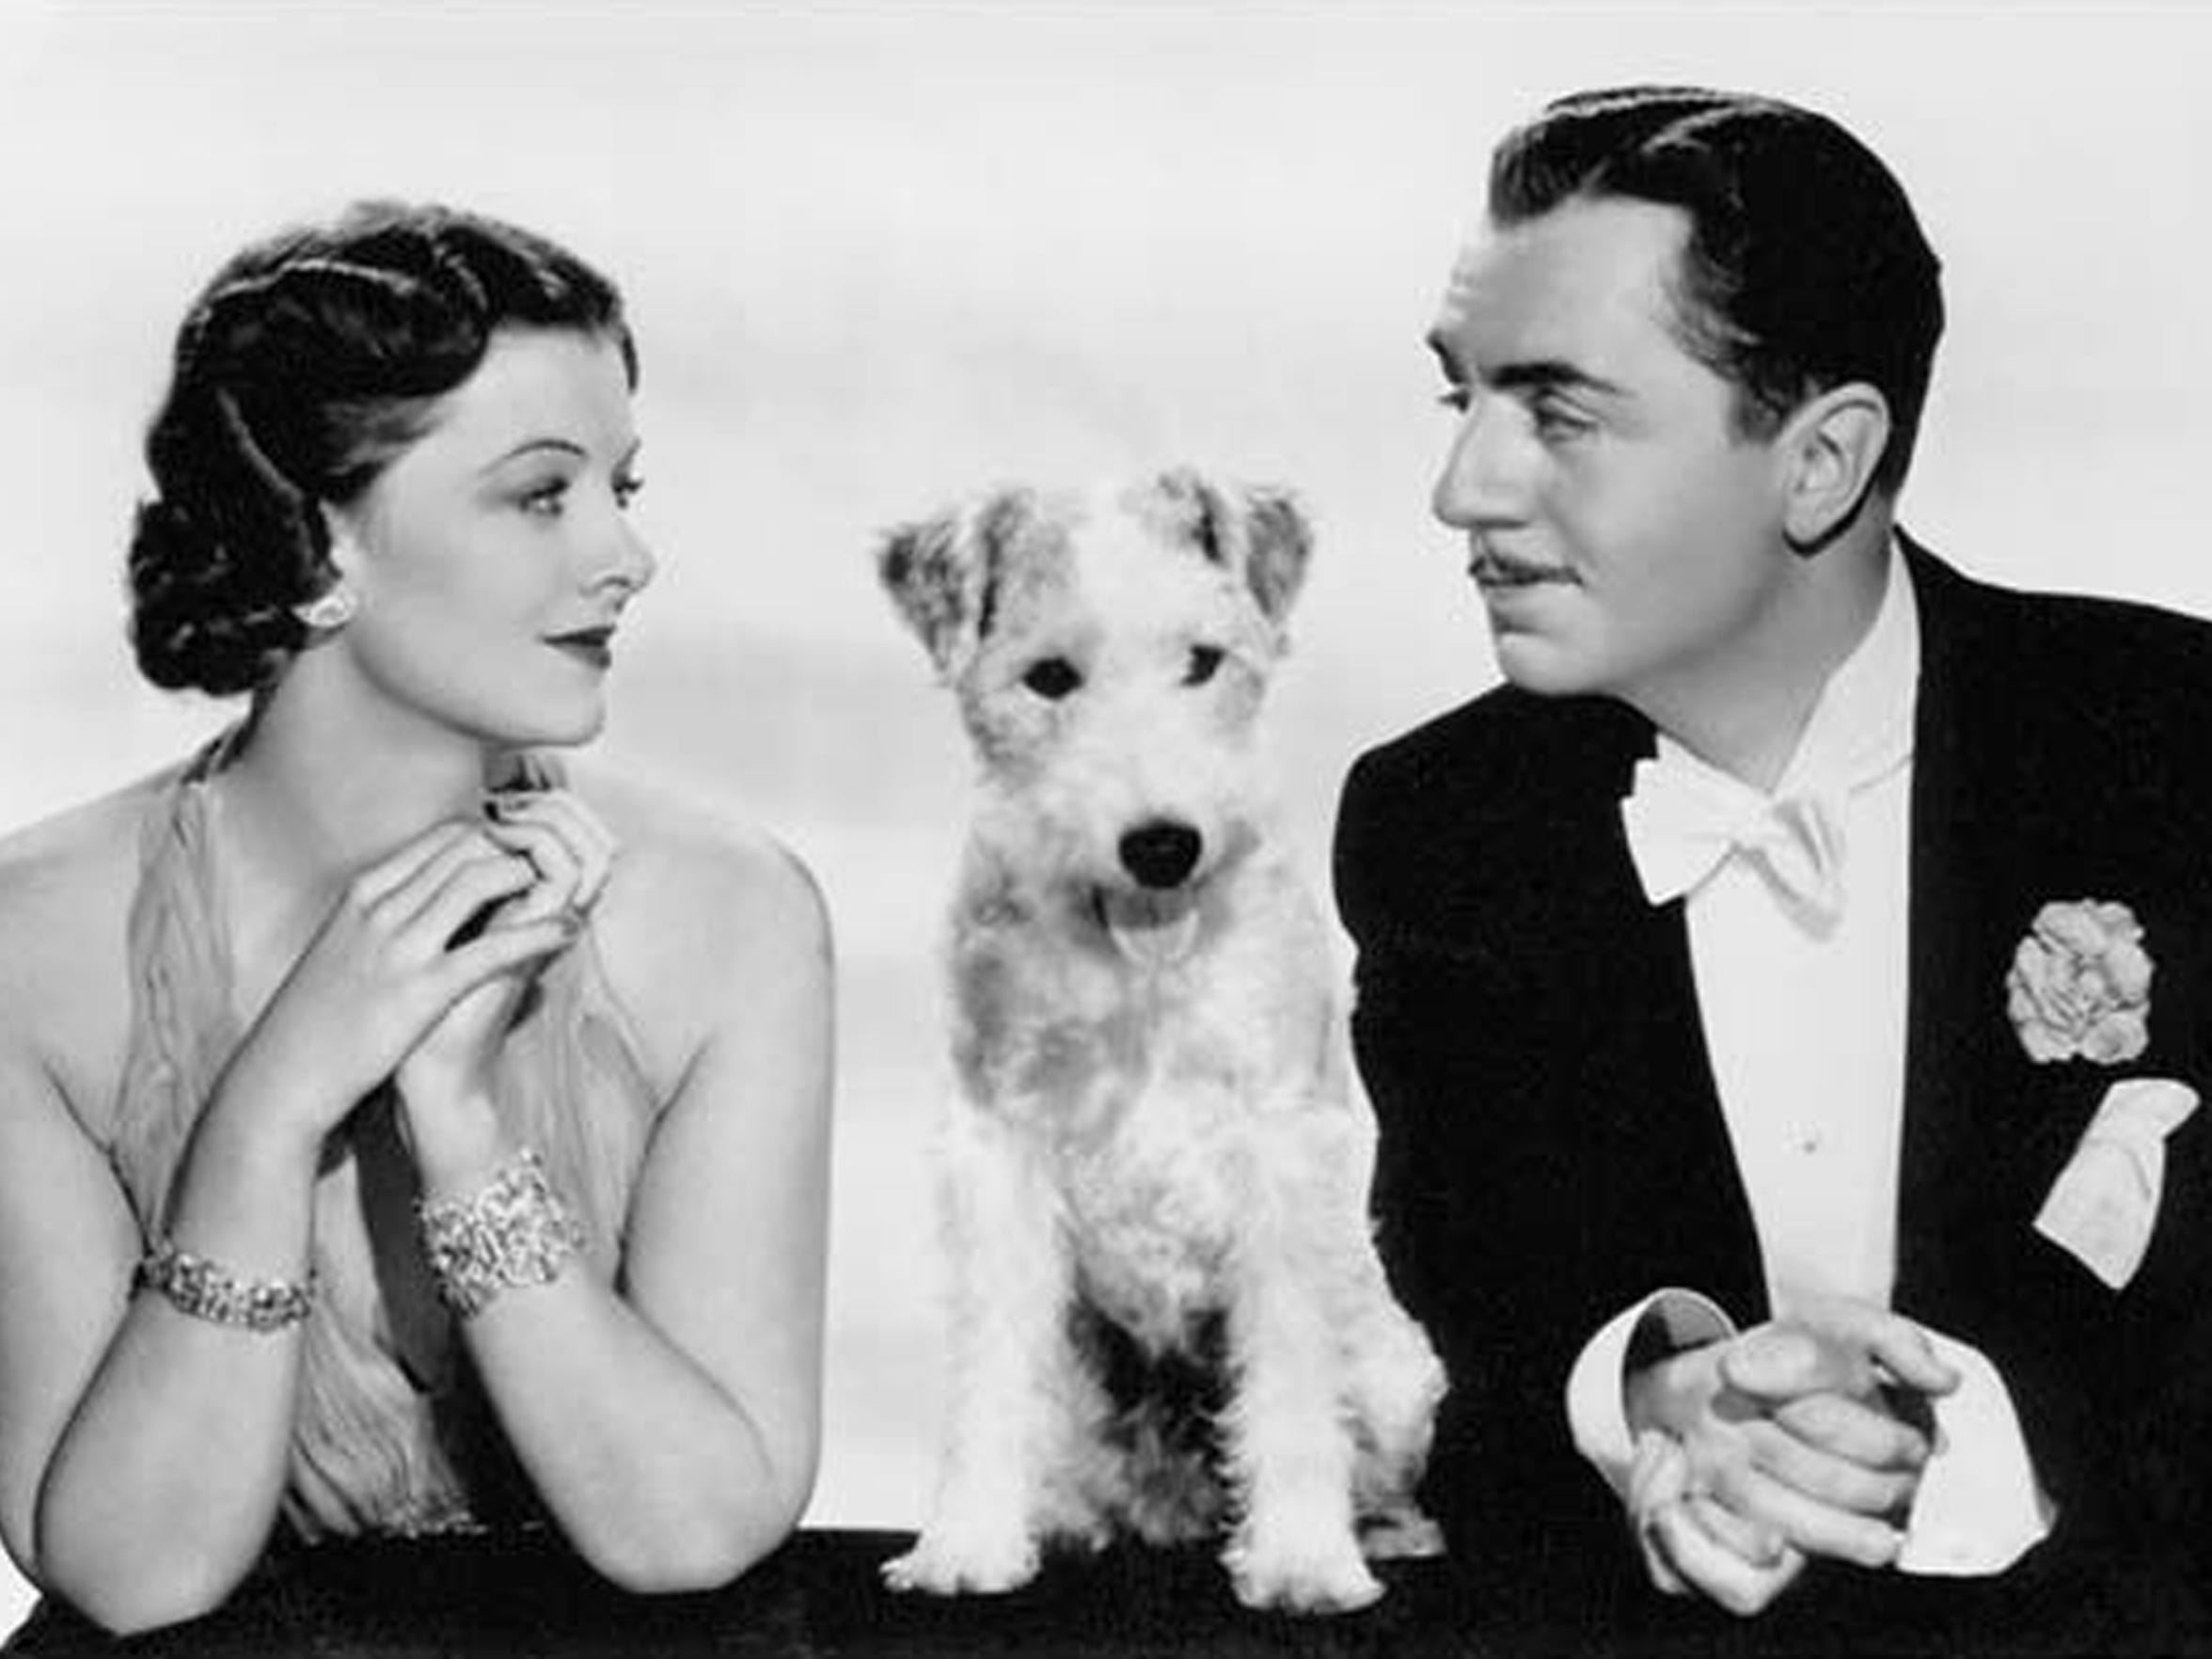 Myrna Loy poses with Asta the dog and William Powell